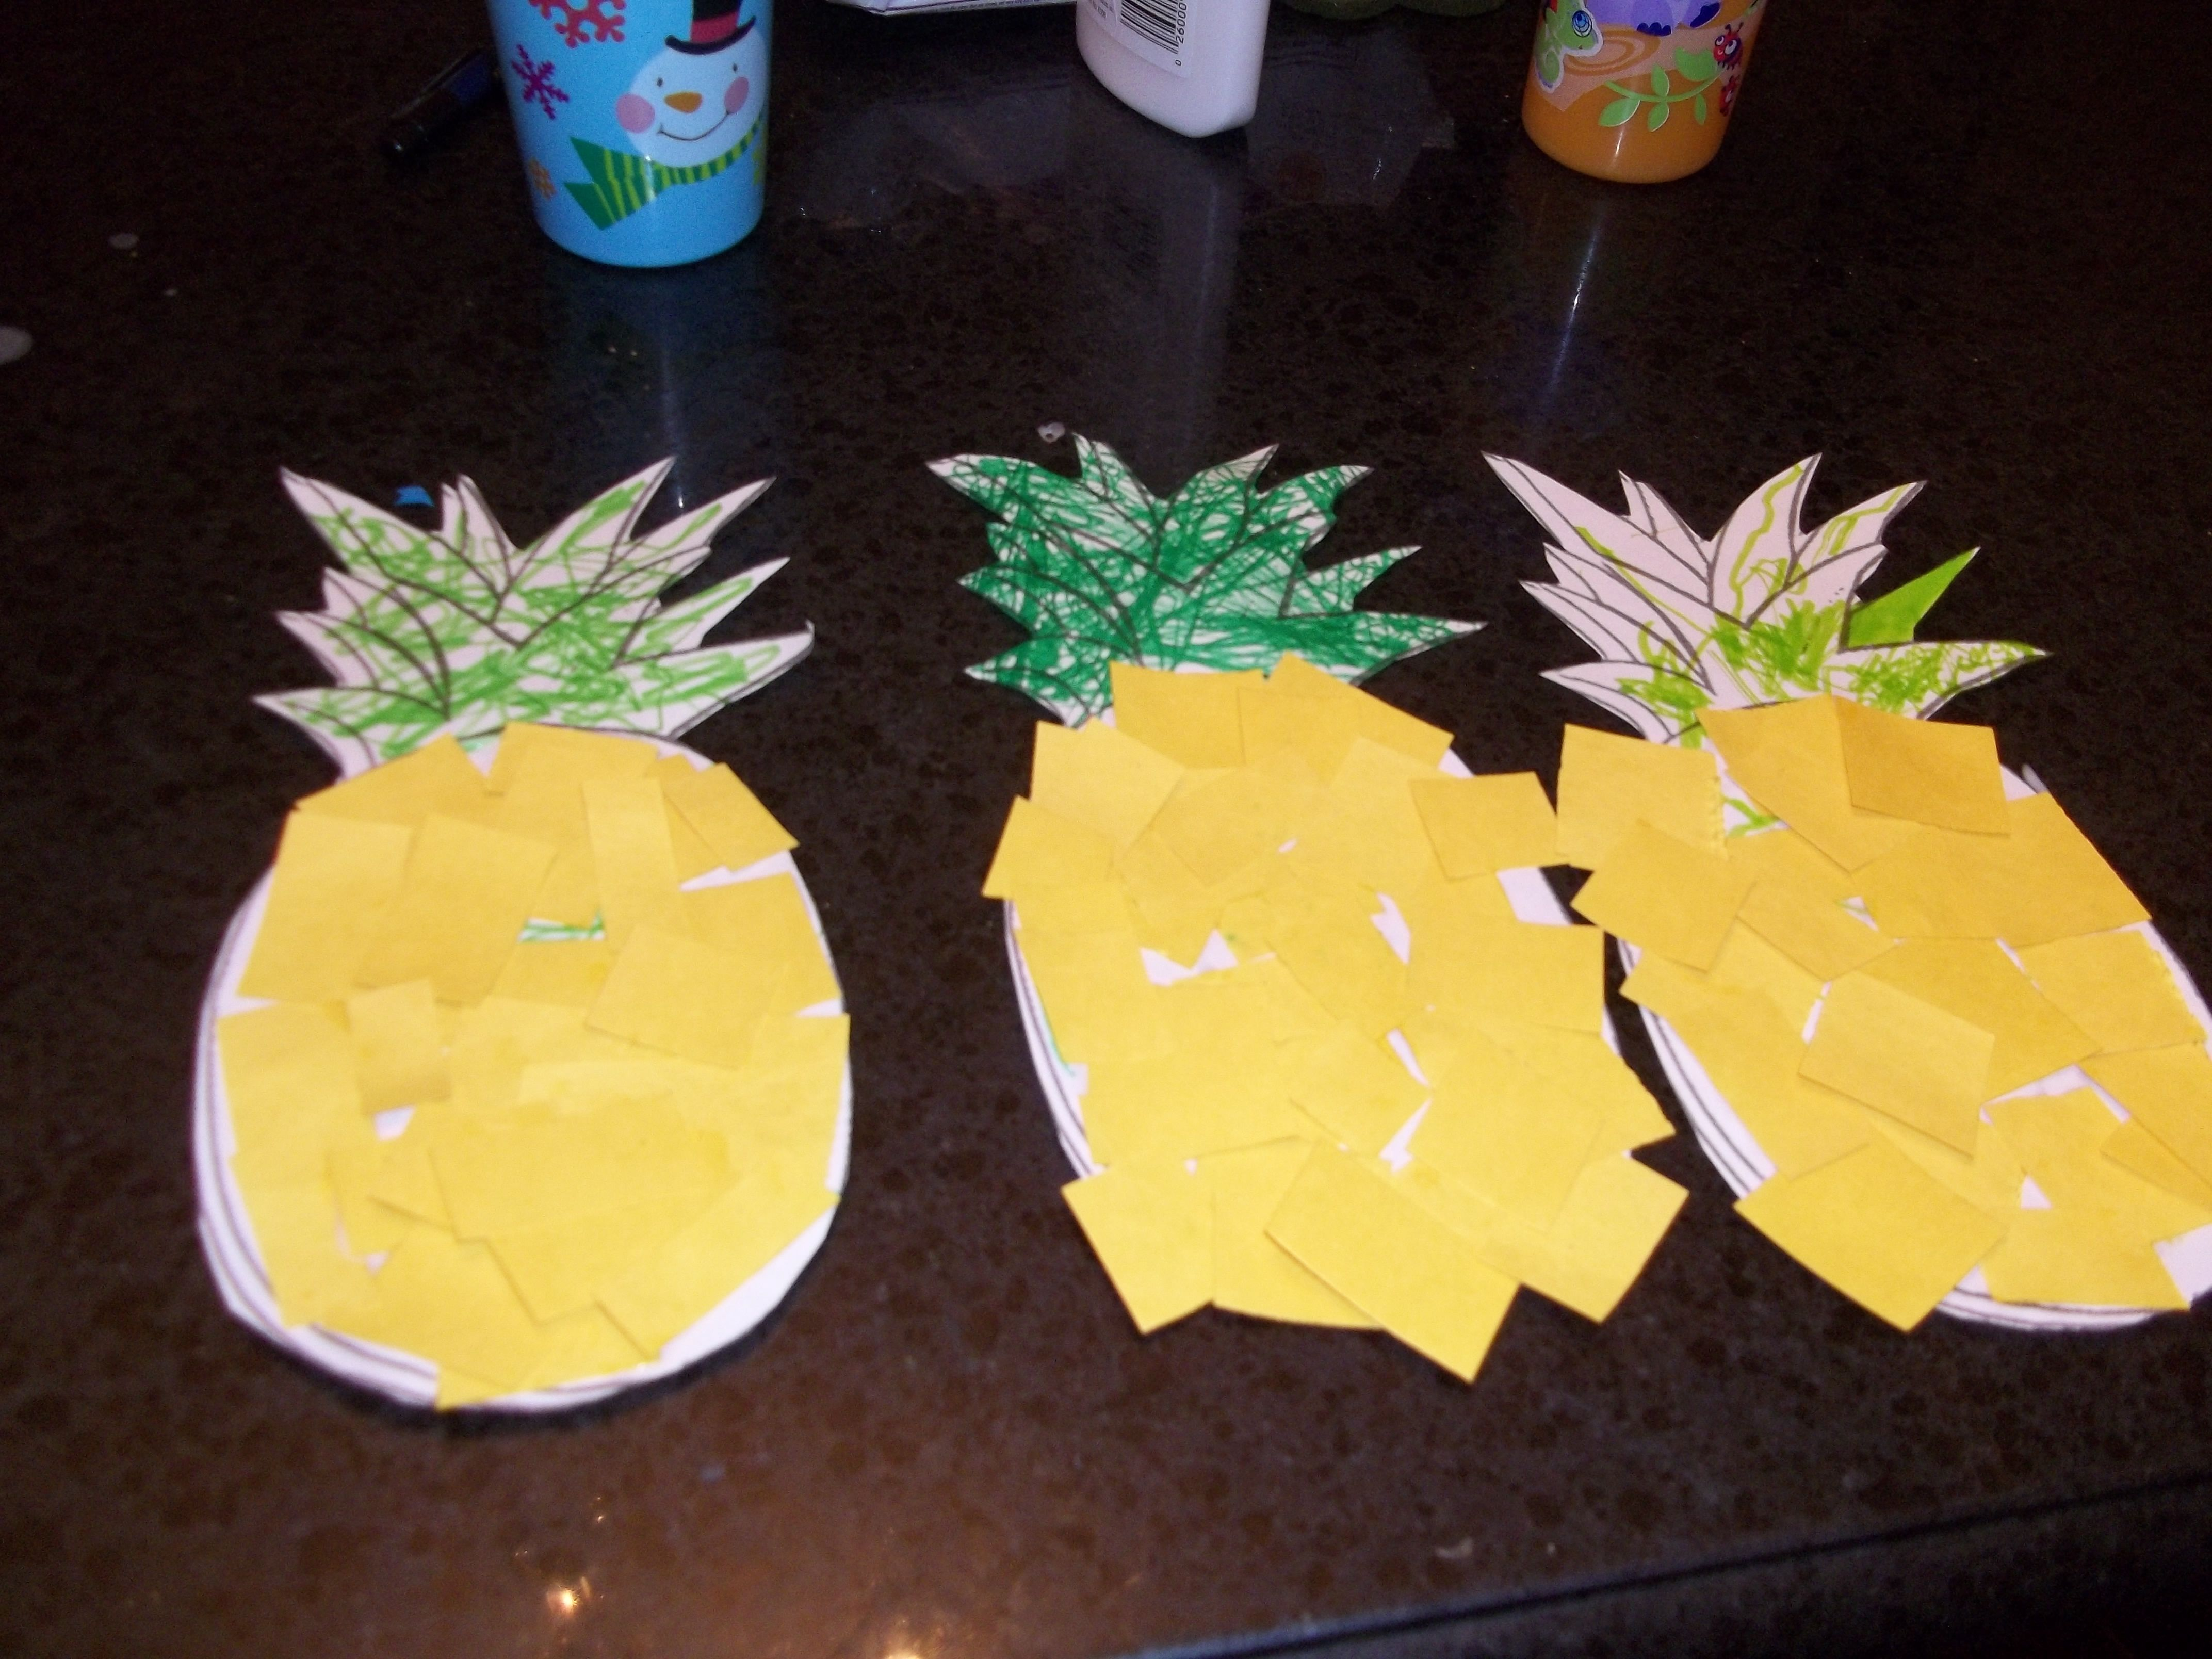 Pinapple Shape Color Or Finger Paint Leaves Green And Then Add Square Construction Paper Pieces